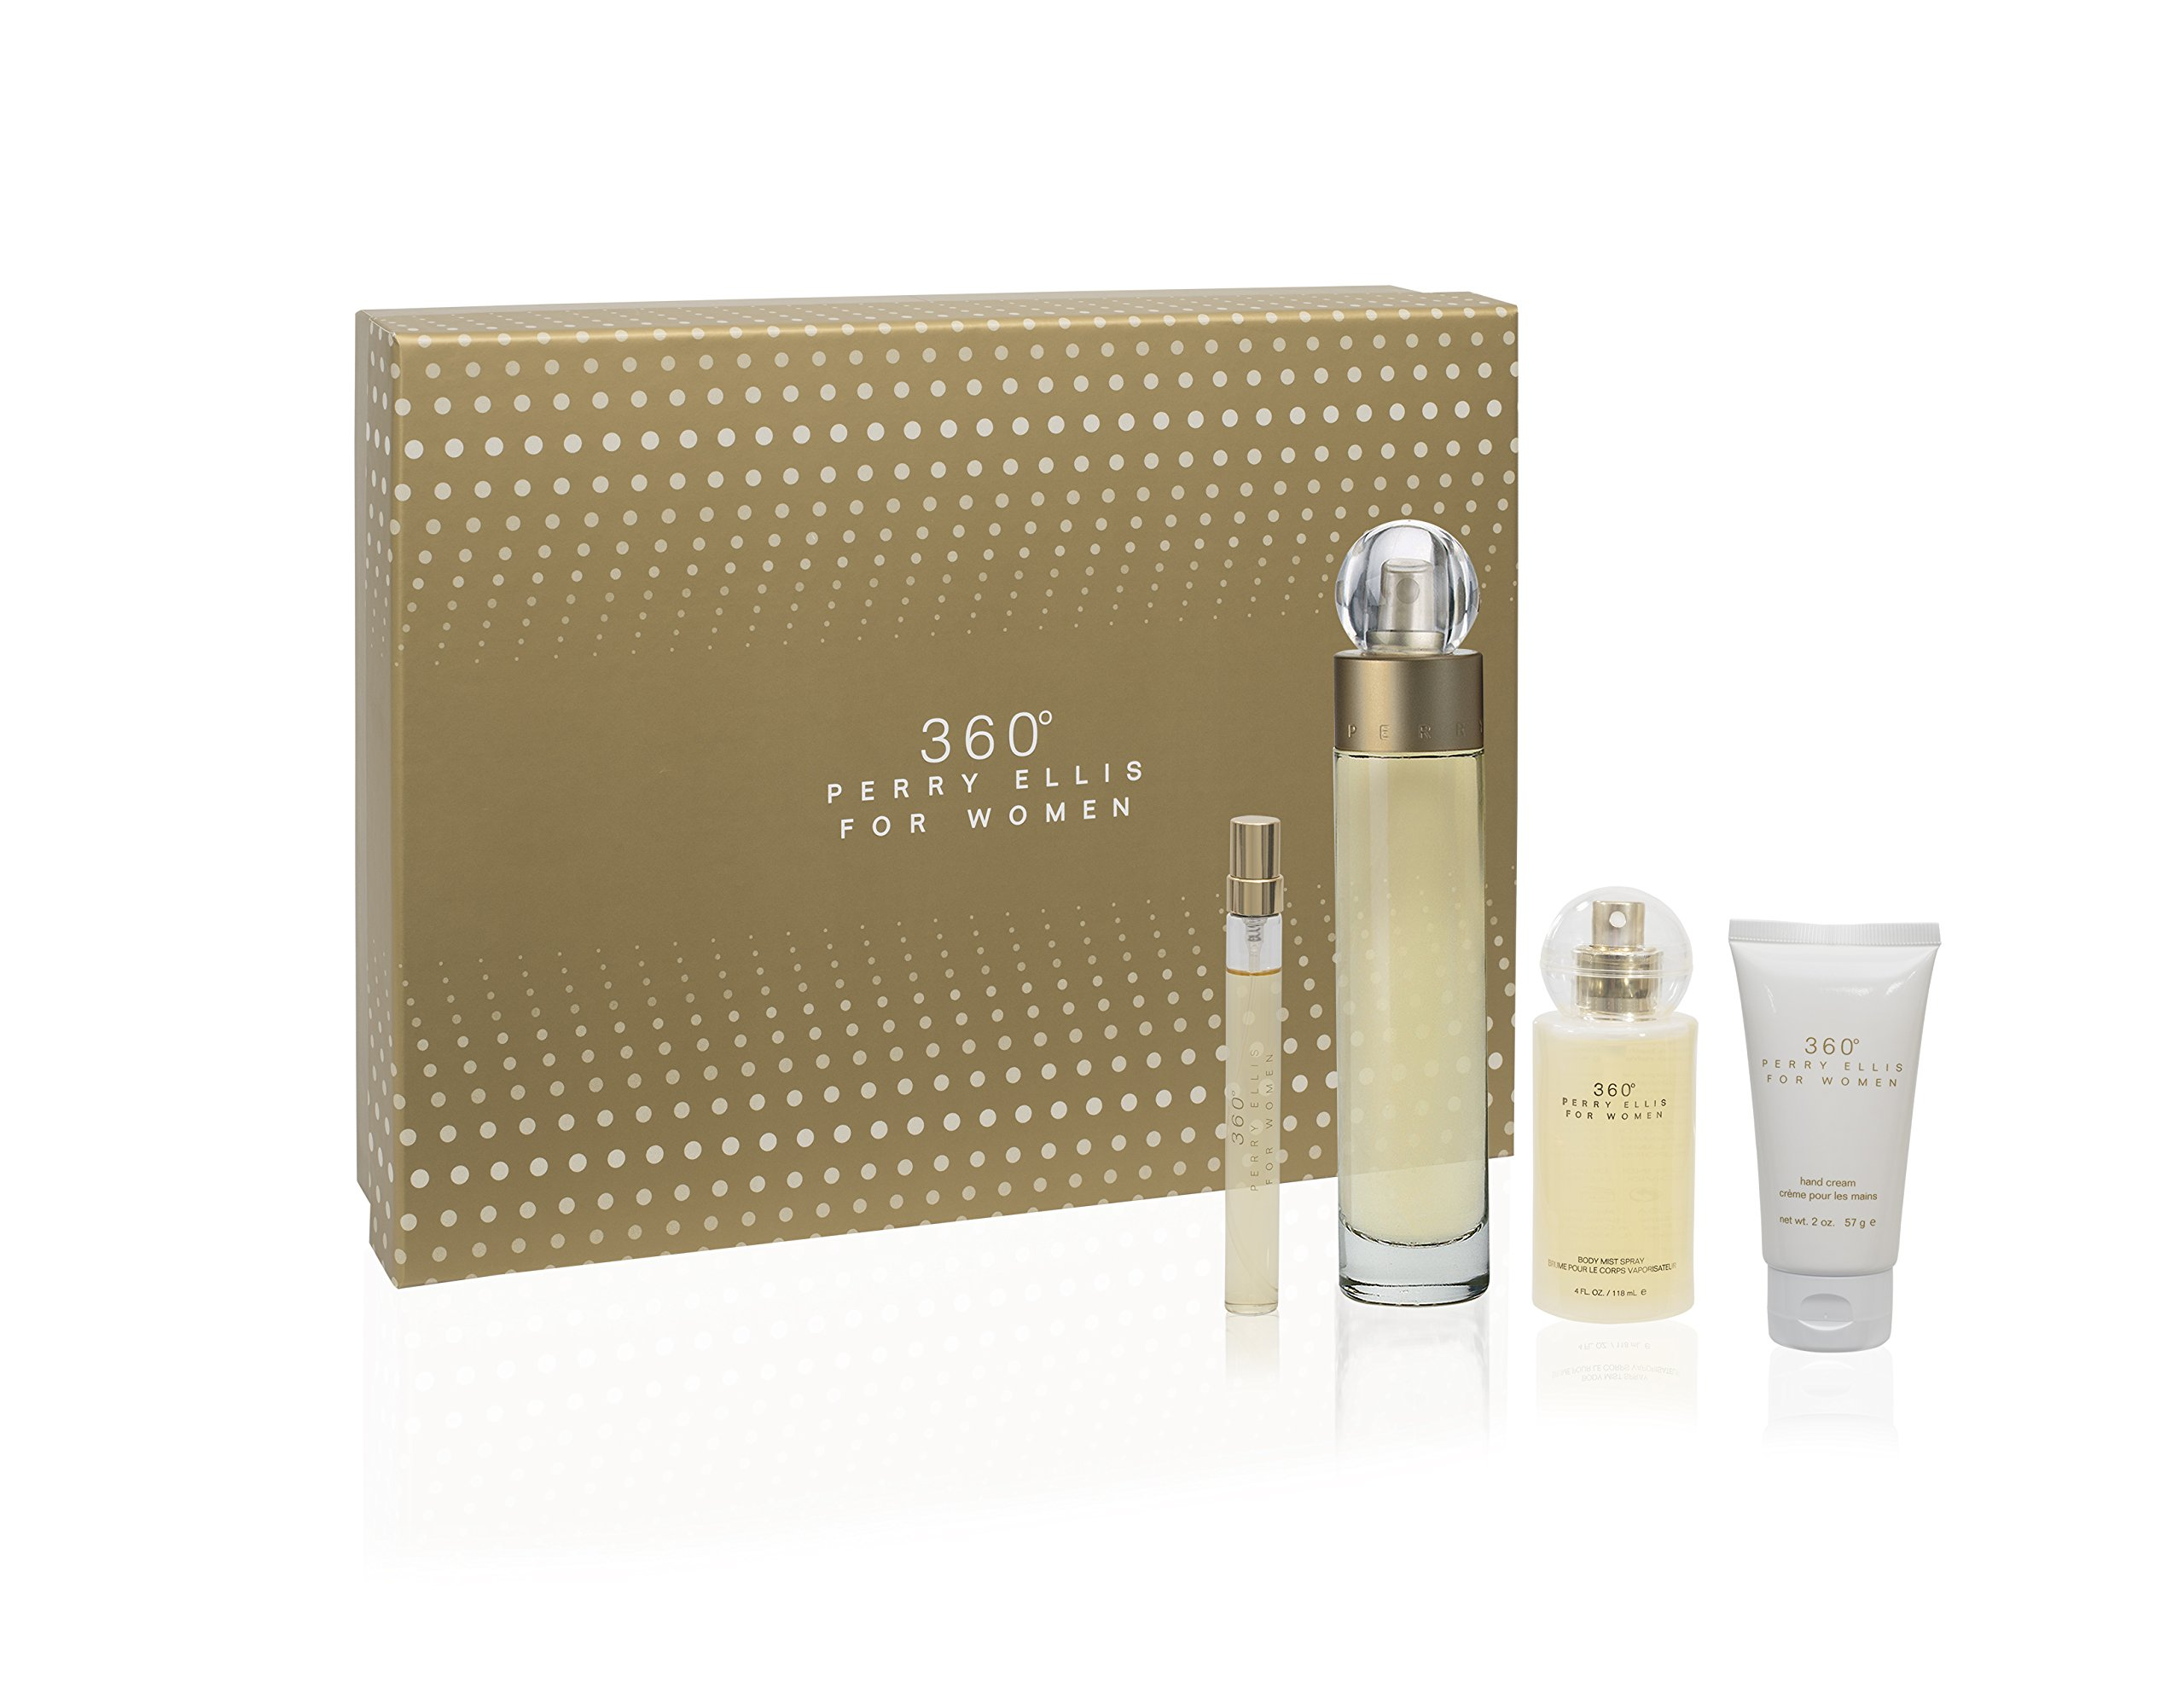 Perry Ellis 360 for Women 4 Piece Gift Set